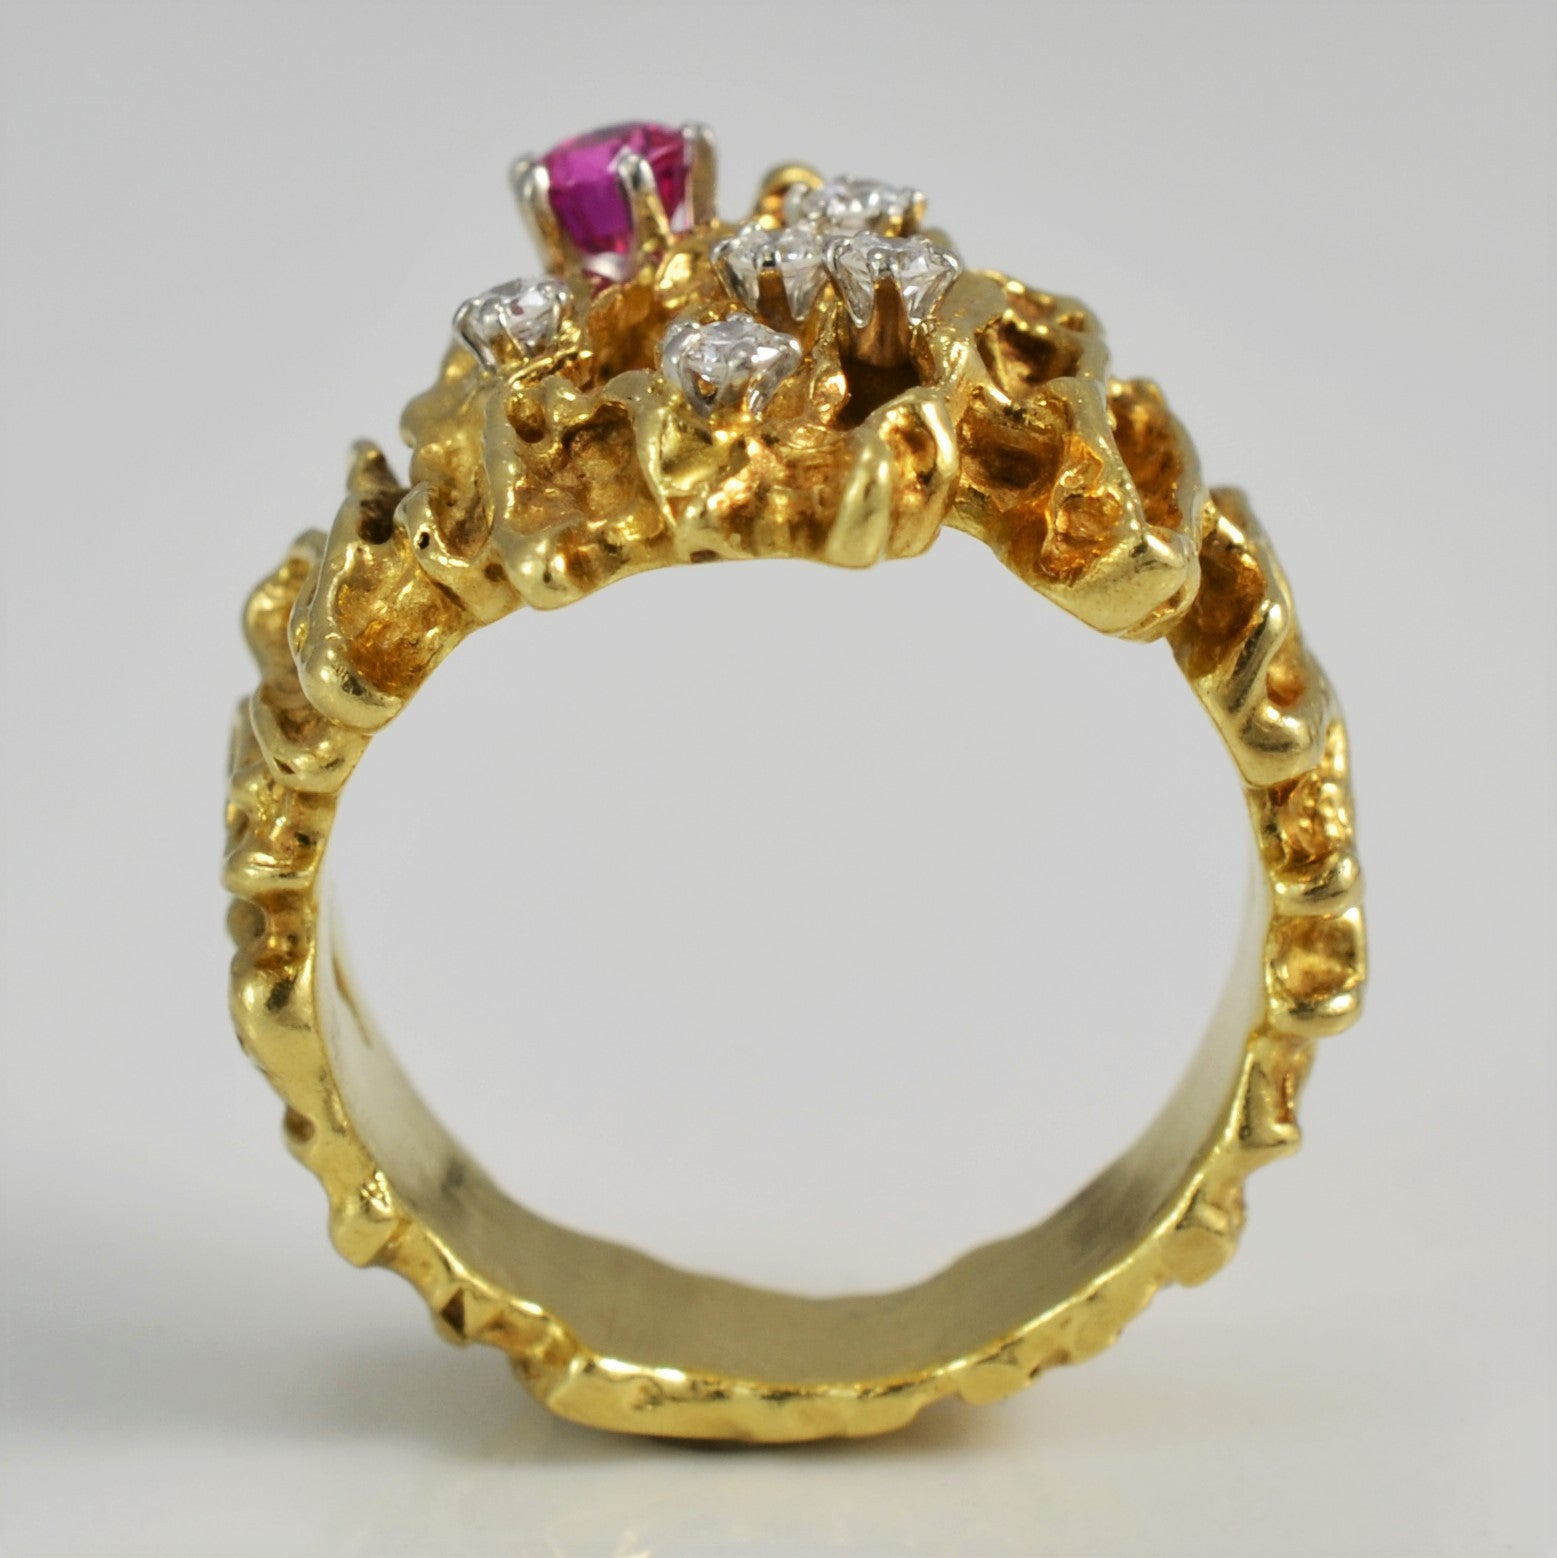 Diamond & Ruby Textured Cocktail Ring | 0.13 ctw, SZ 7 |